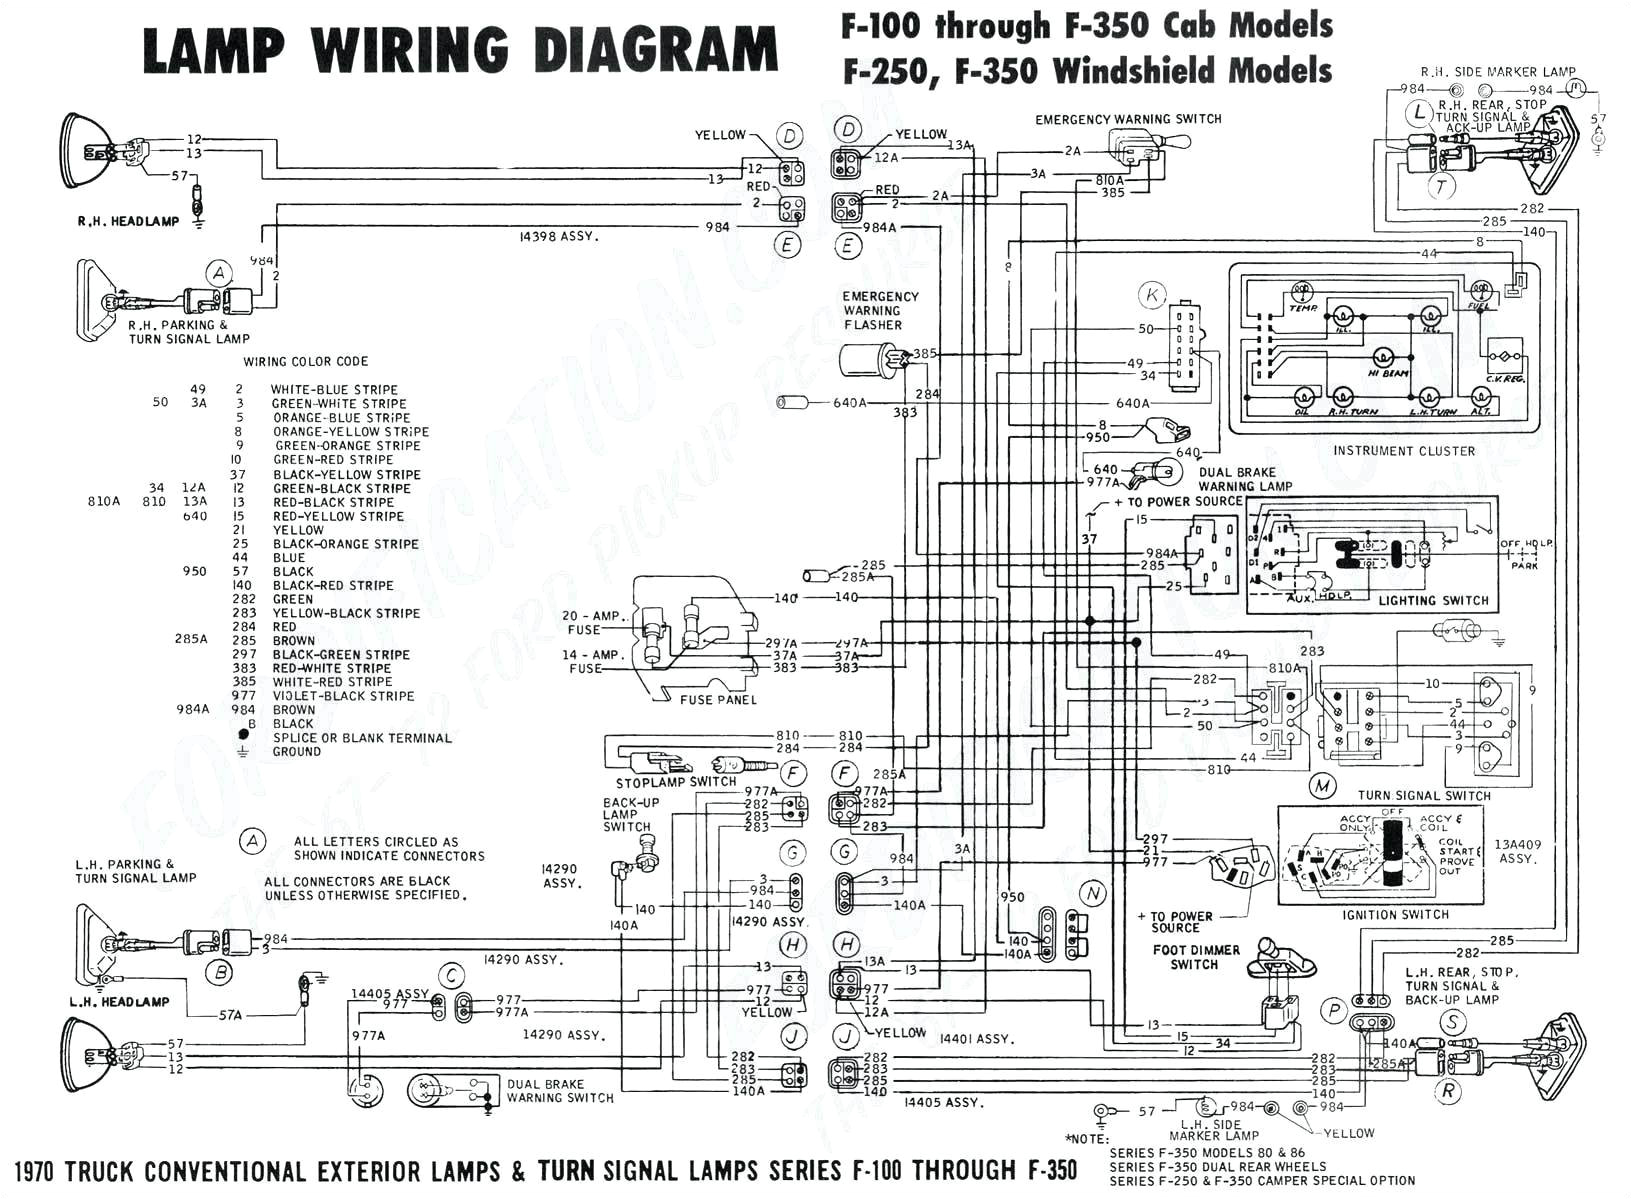 tempstar heat pump wiring diagram wiring diagrams konsult rv plug diagram for 2010 conquest